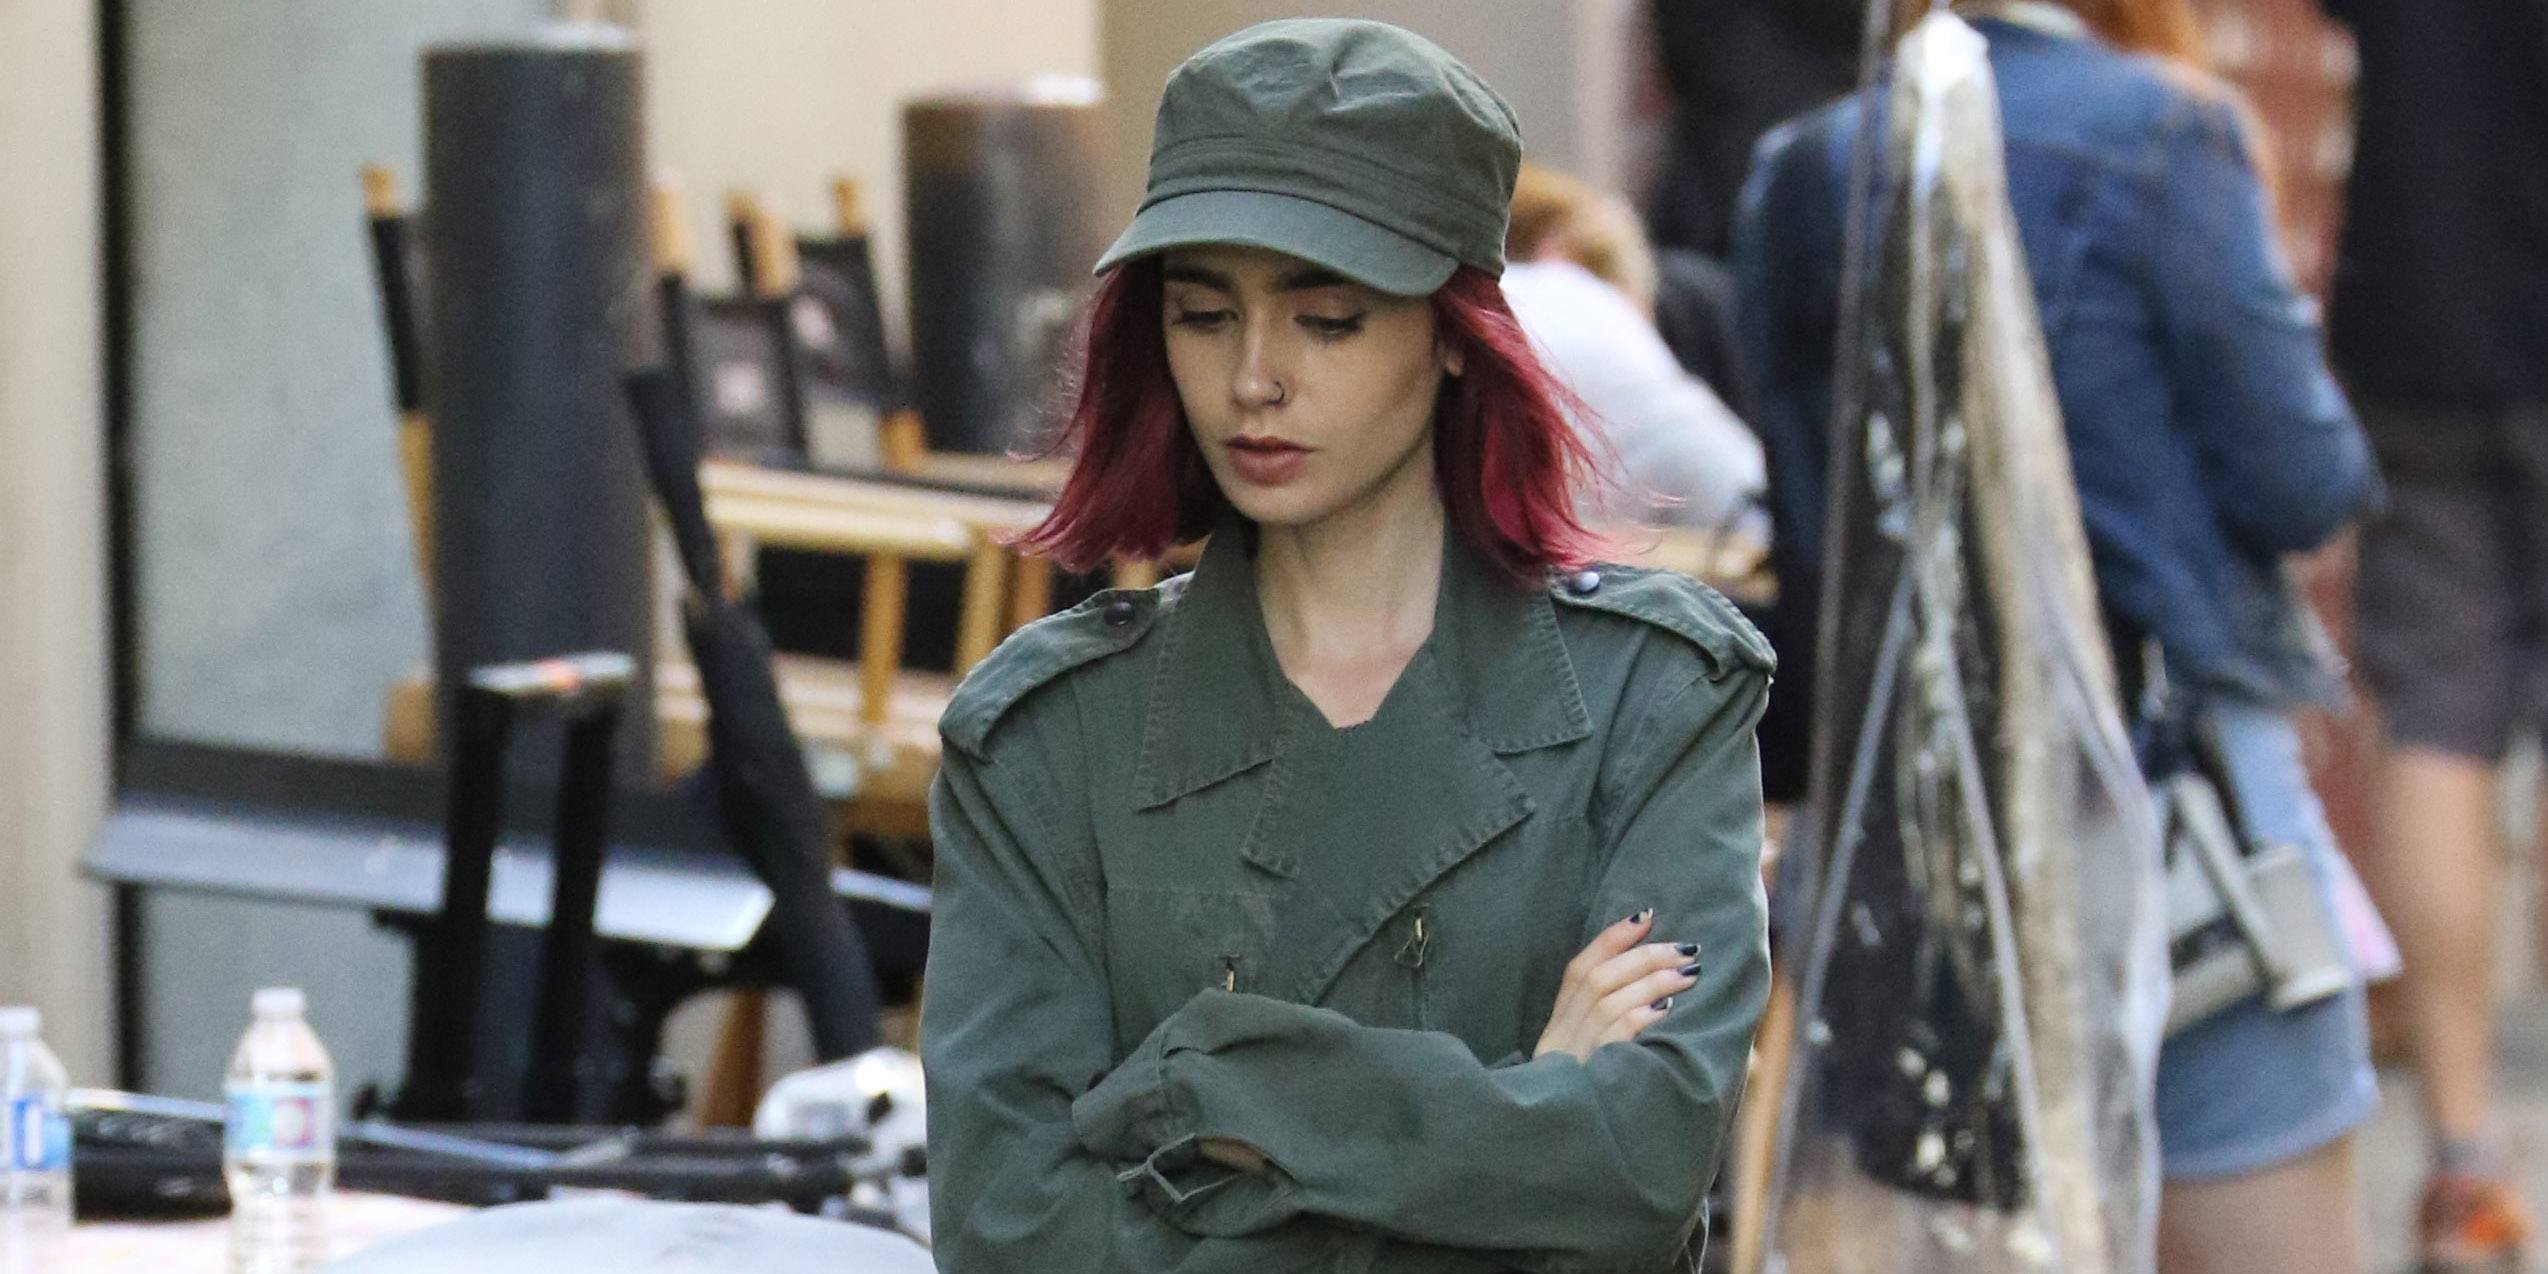 Lily Collins and Paul Dano film Okja in Vancouver (PHOTOS)